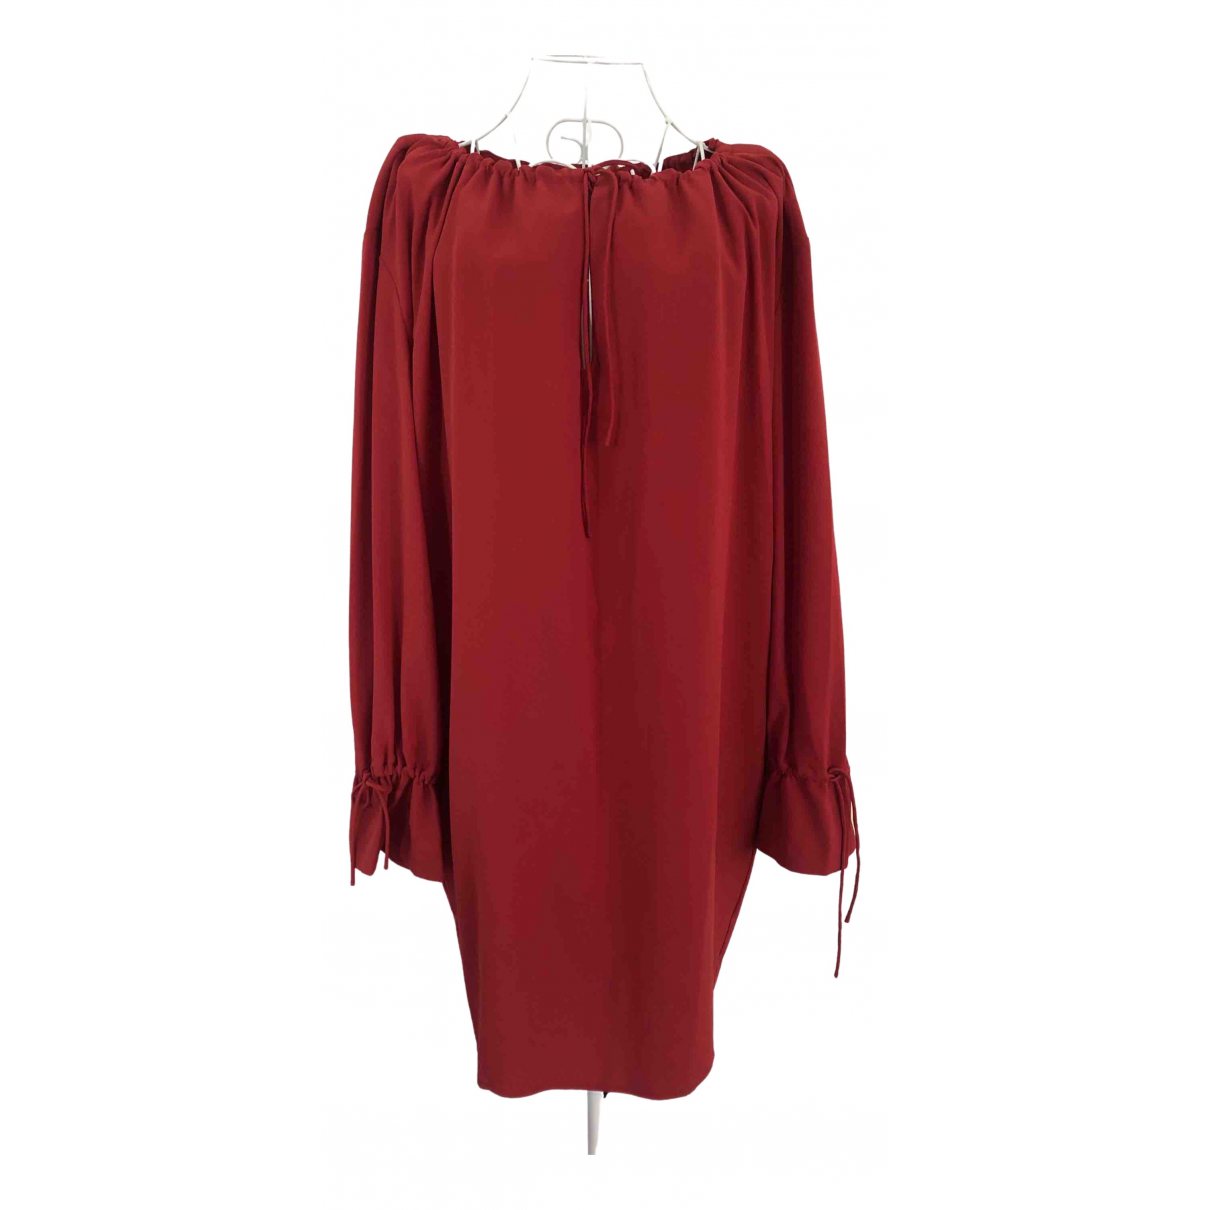 & Other Stories - Robe   pour femme - rouge